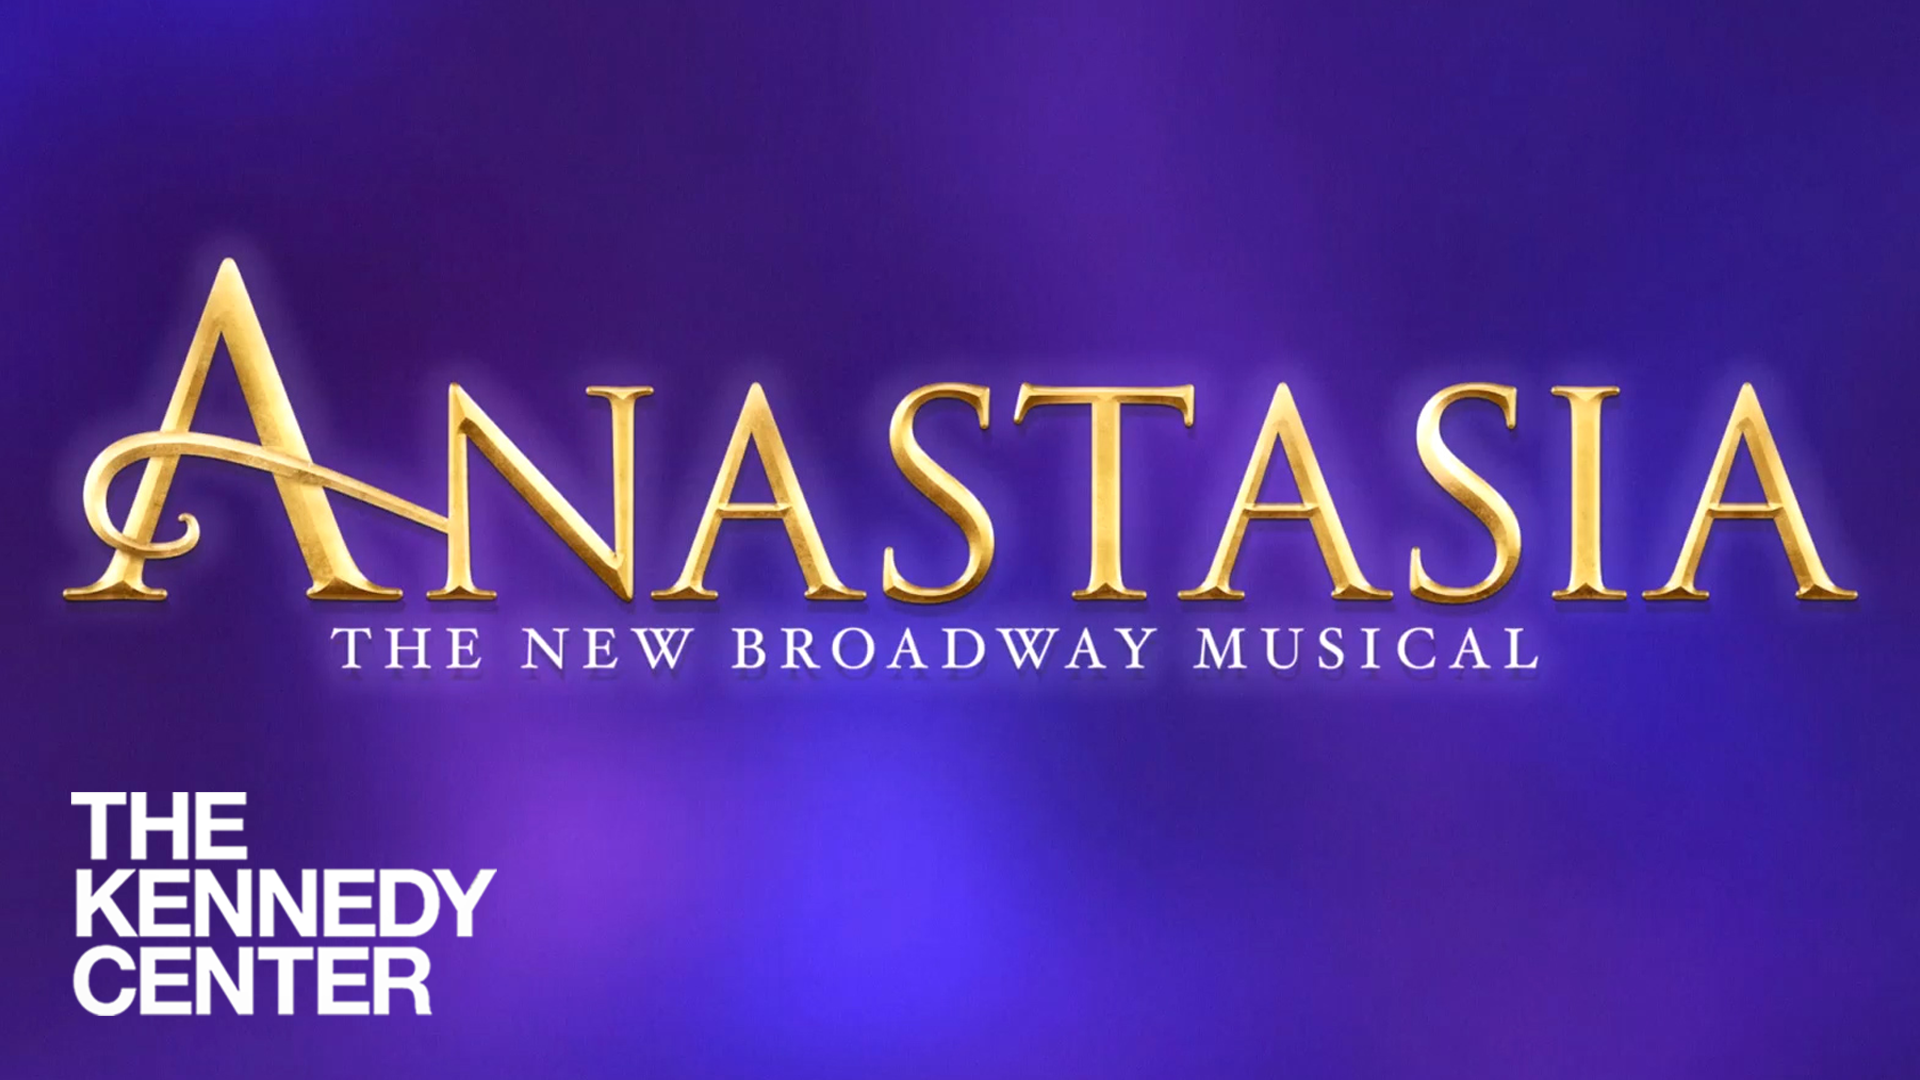 Anastasia at The Kennedy Center